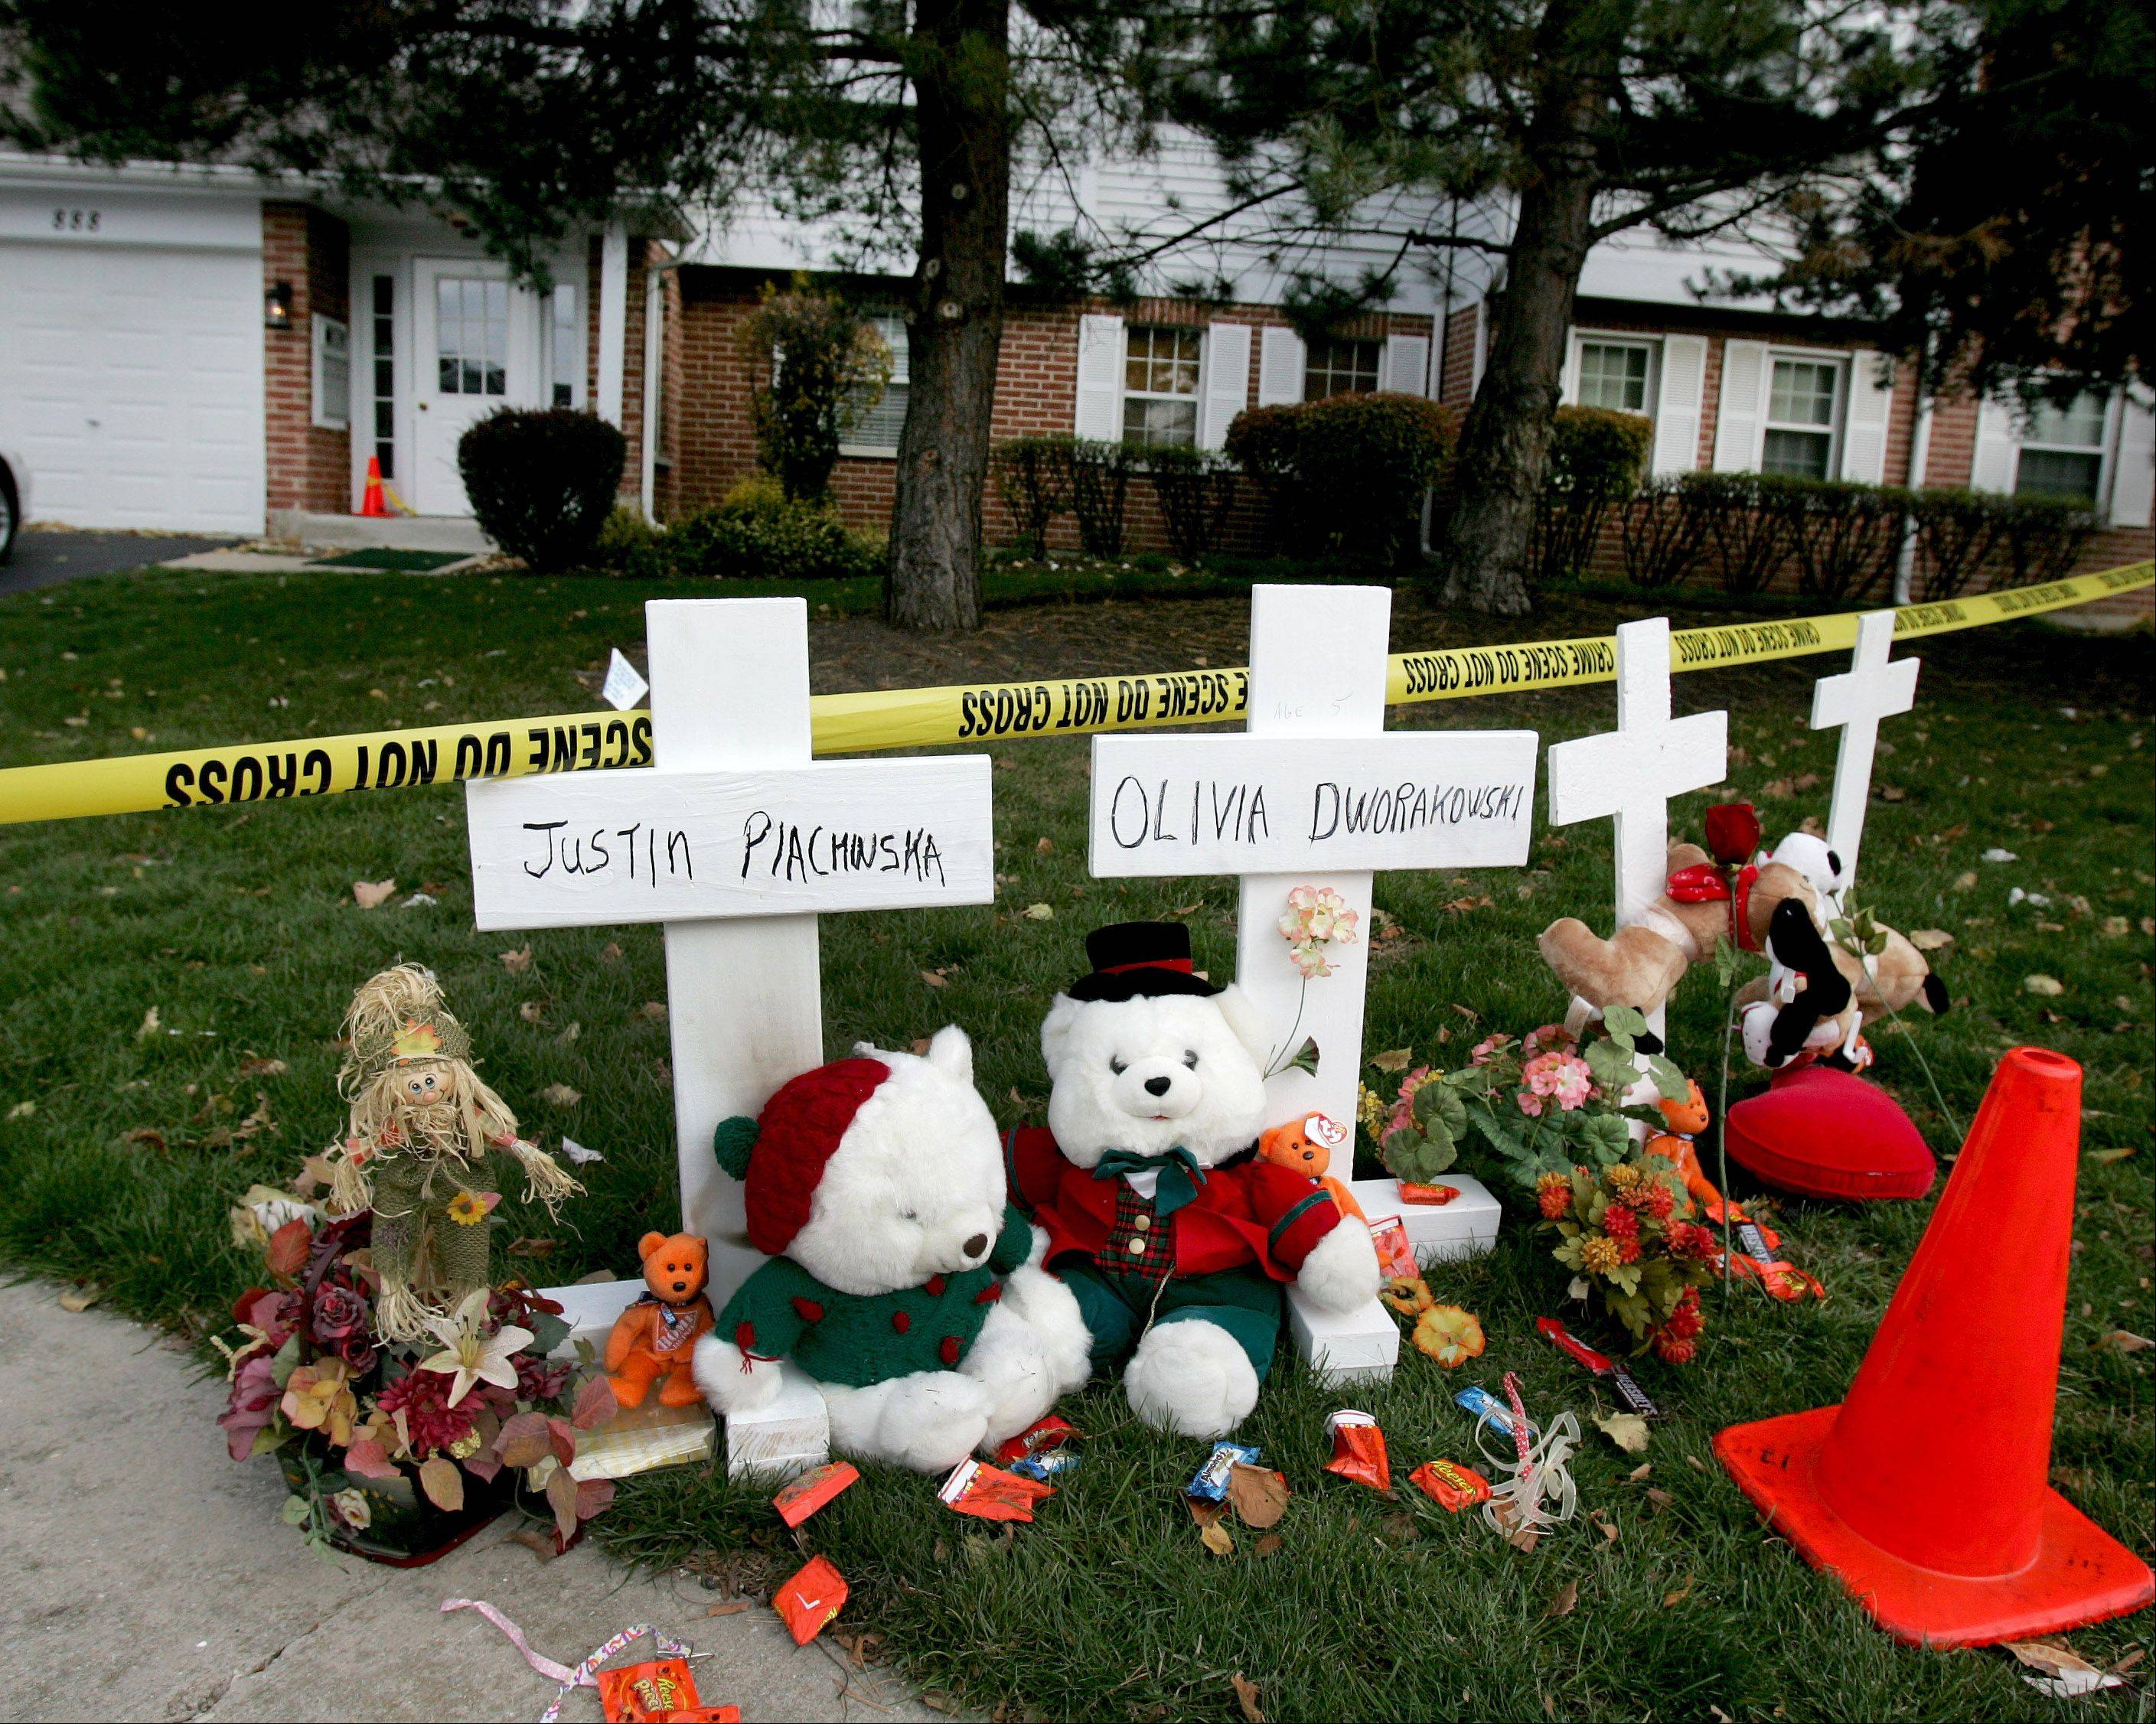 A makeshift memorial was set up near the Naperville home where Elzbieta Plackowska is accused of stabbing to death her 7-year-old son and a 5-year-old girl in her care.